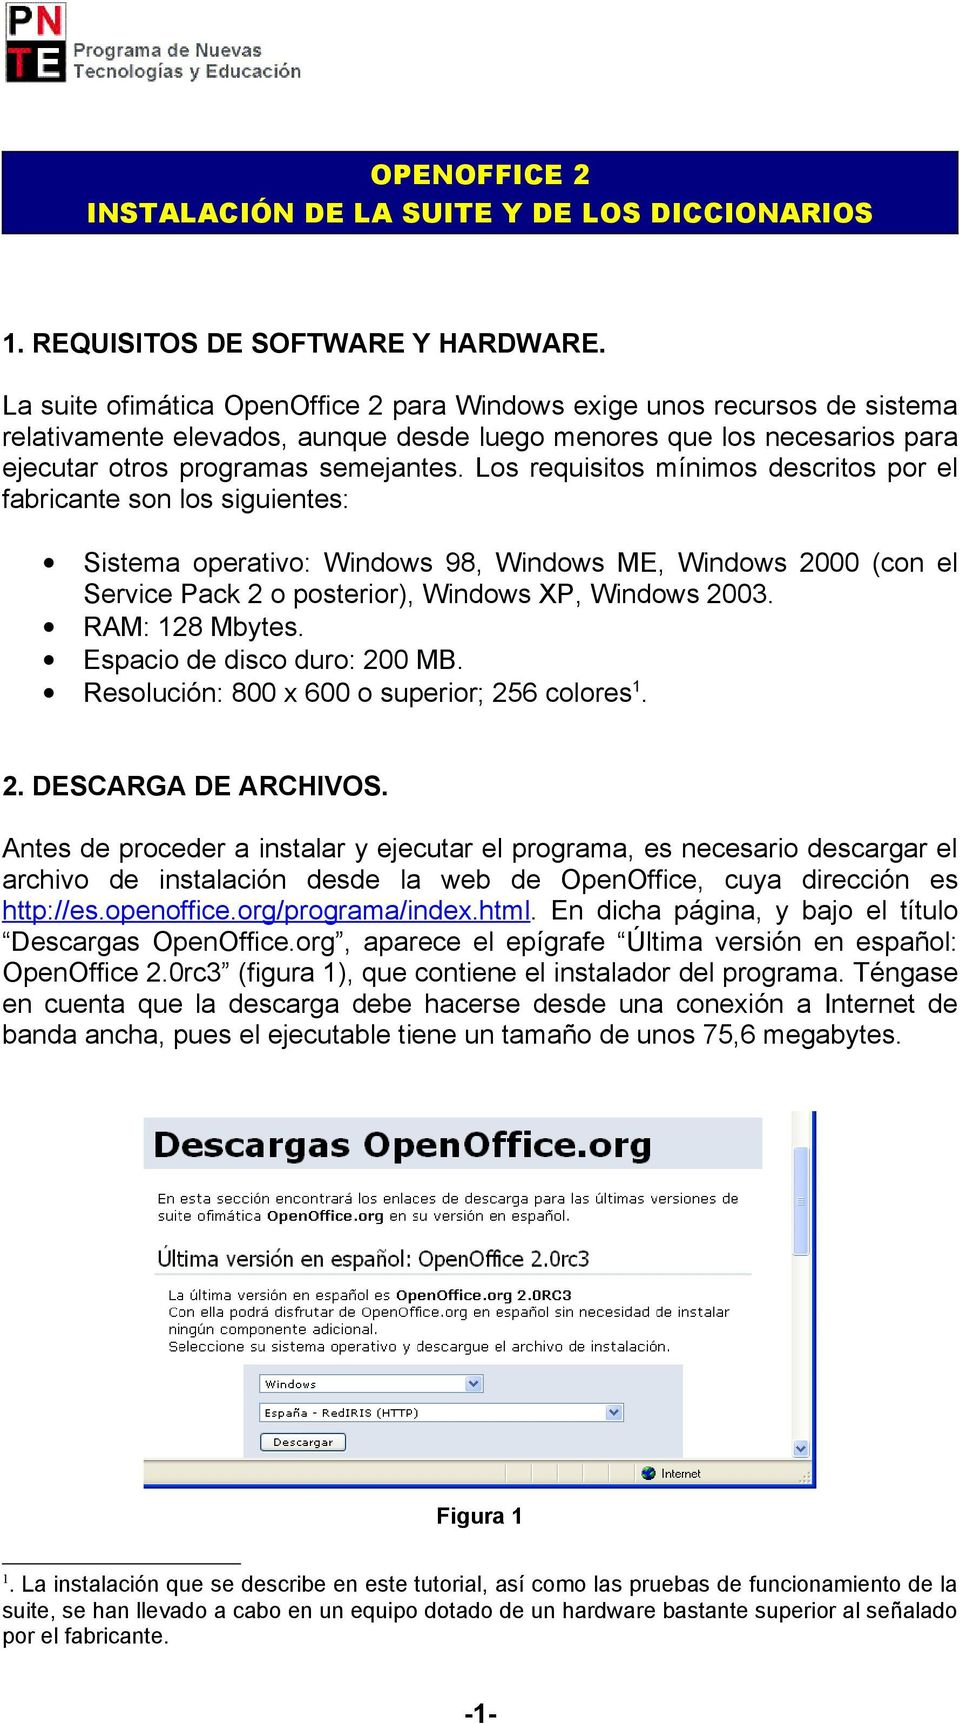 Los requisitos mínimos descritos por el fabricante son los siguientes: Sistema operativo: Windows 98, Windows ME, Windows 2000 (con el Service Pack 2 o posterior), Windows XP, Windows 2003.